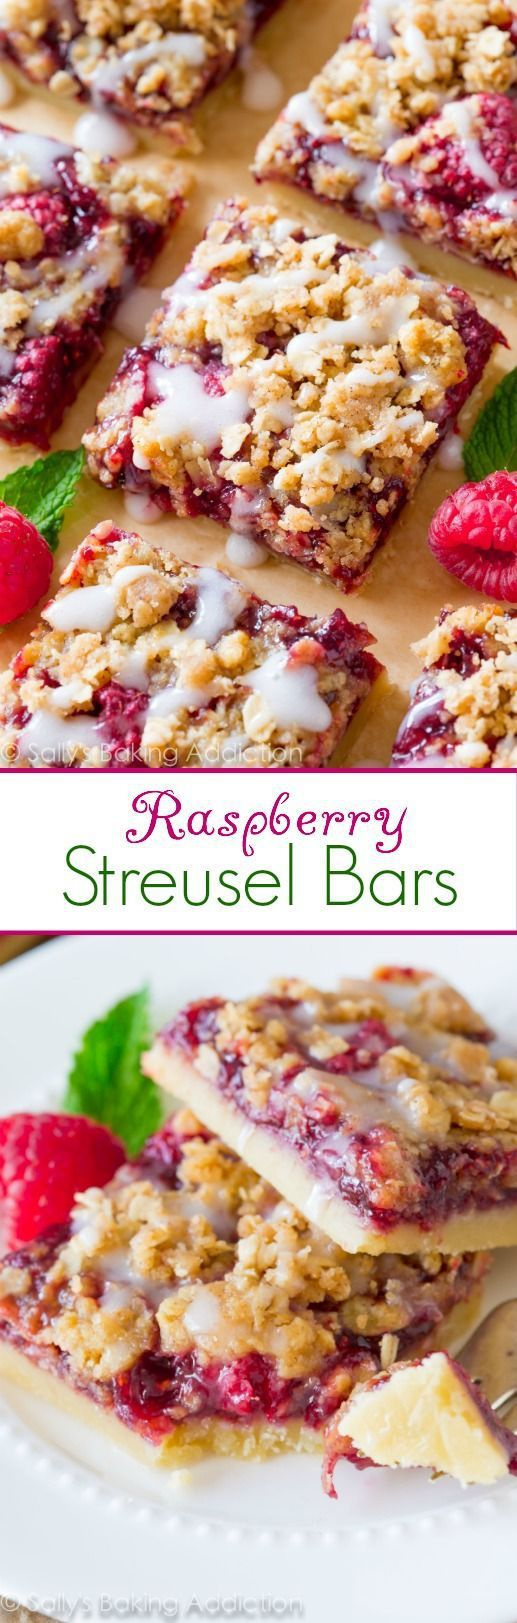 Raspberry Streusel Bars Dessert Recipe via Sally's Baking Addiction - ALWAYS loved Raspberry Streusel Bars are so simple to make and are even better with brown sugar streusel and sweet vanilla glaze on top!